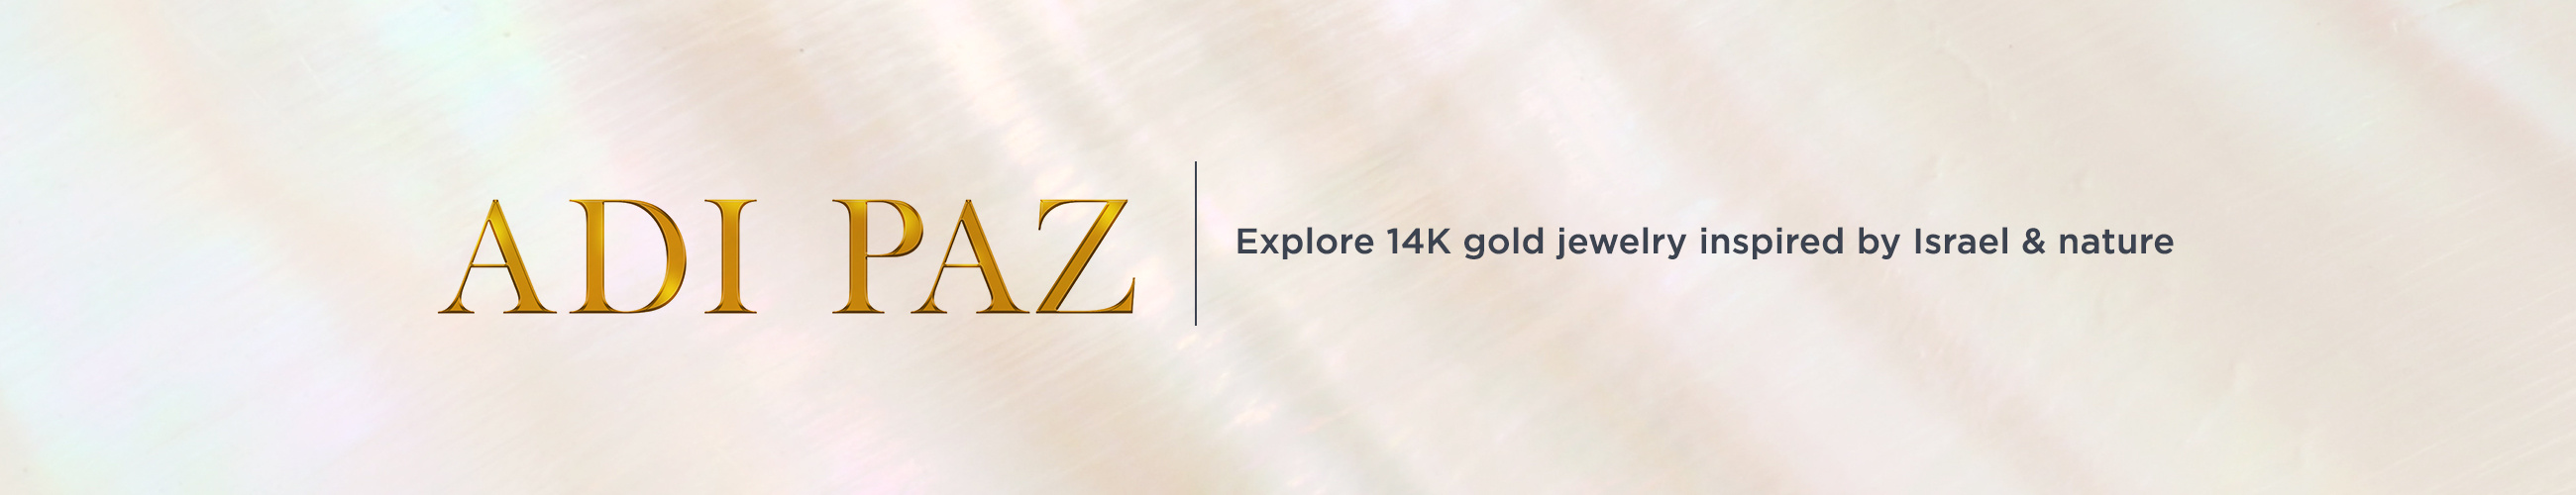 Adi Paz. Explore 14K gold jewelry inspired by Israel & nature